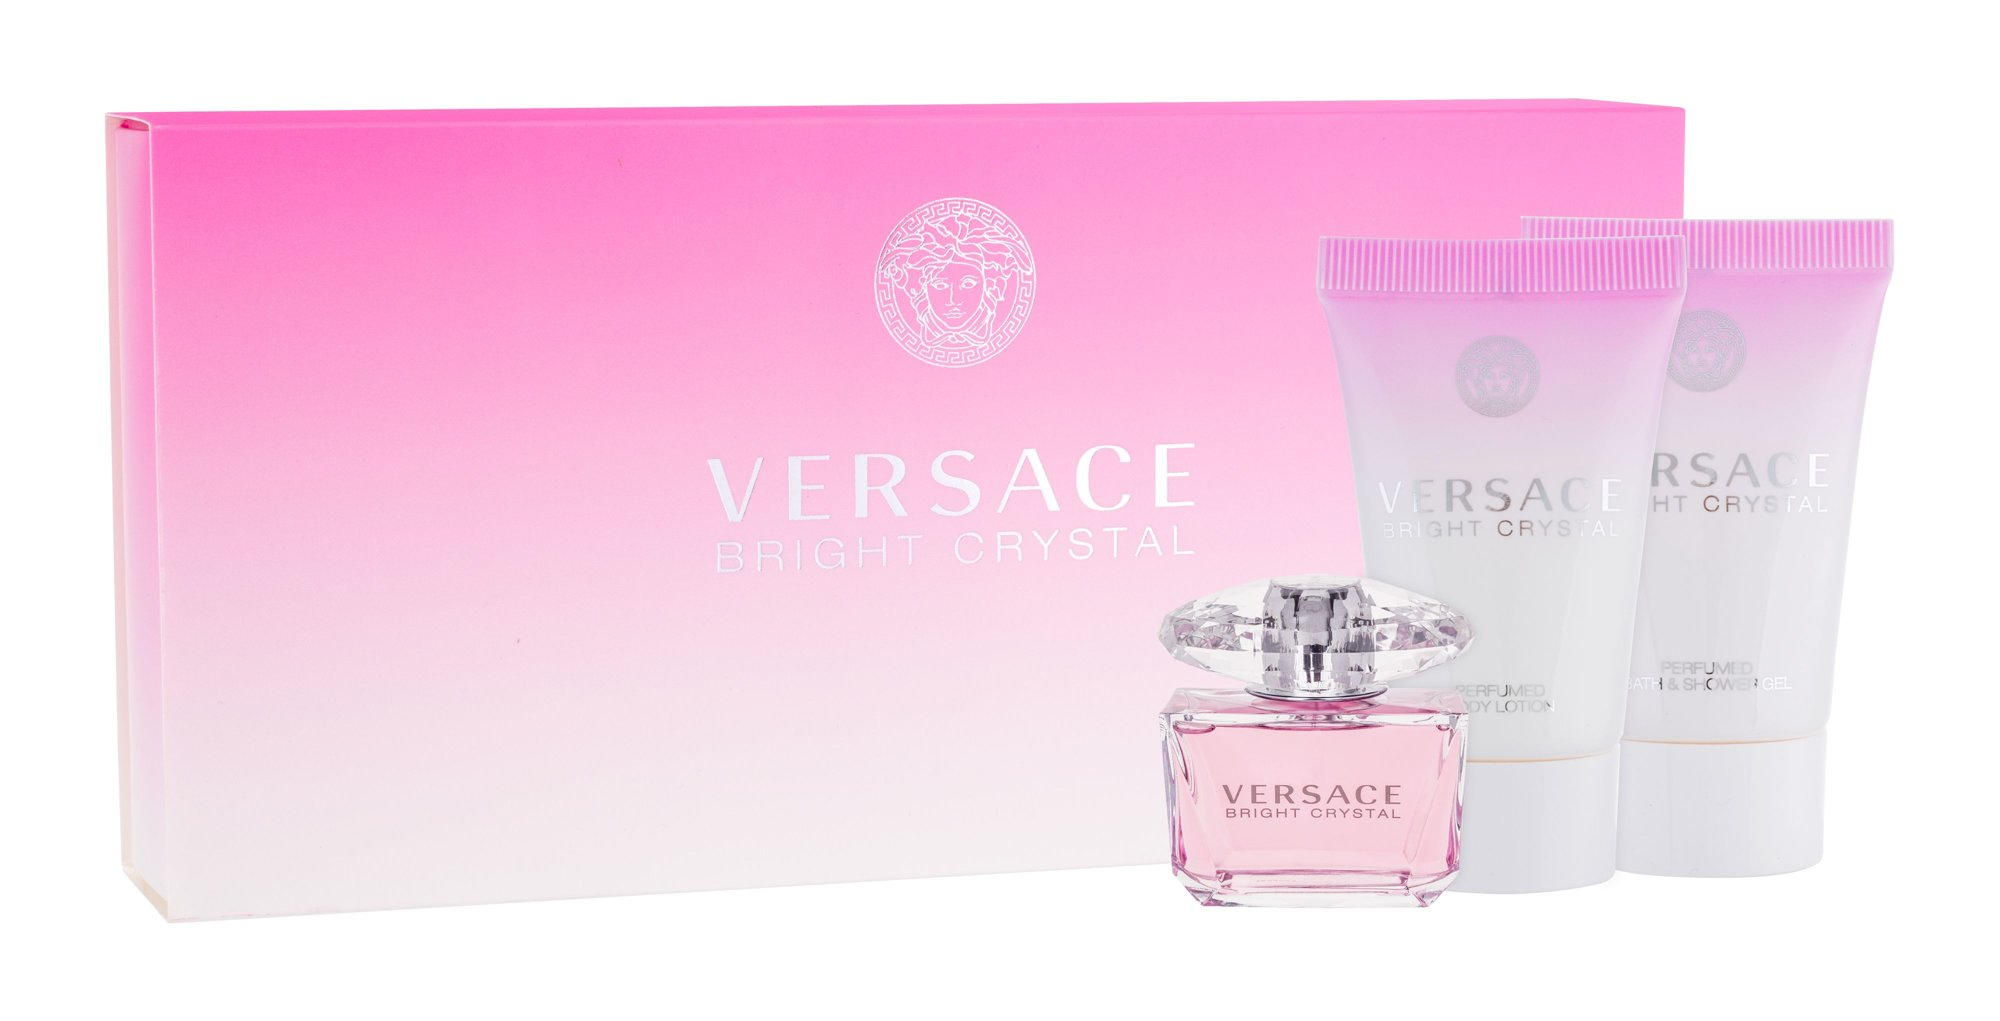 Versace Bright Crystal EDT 5ml